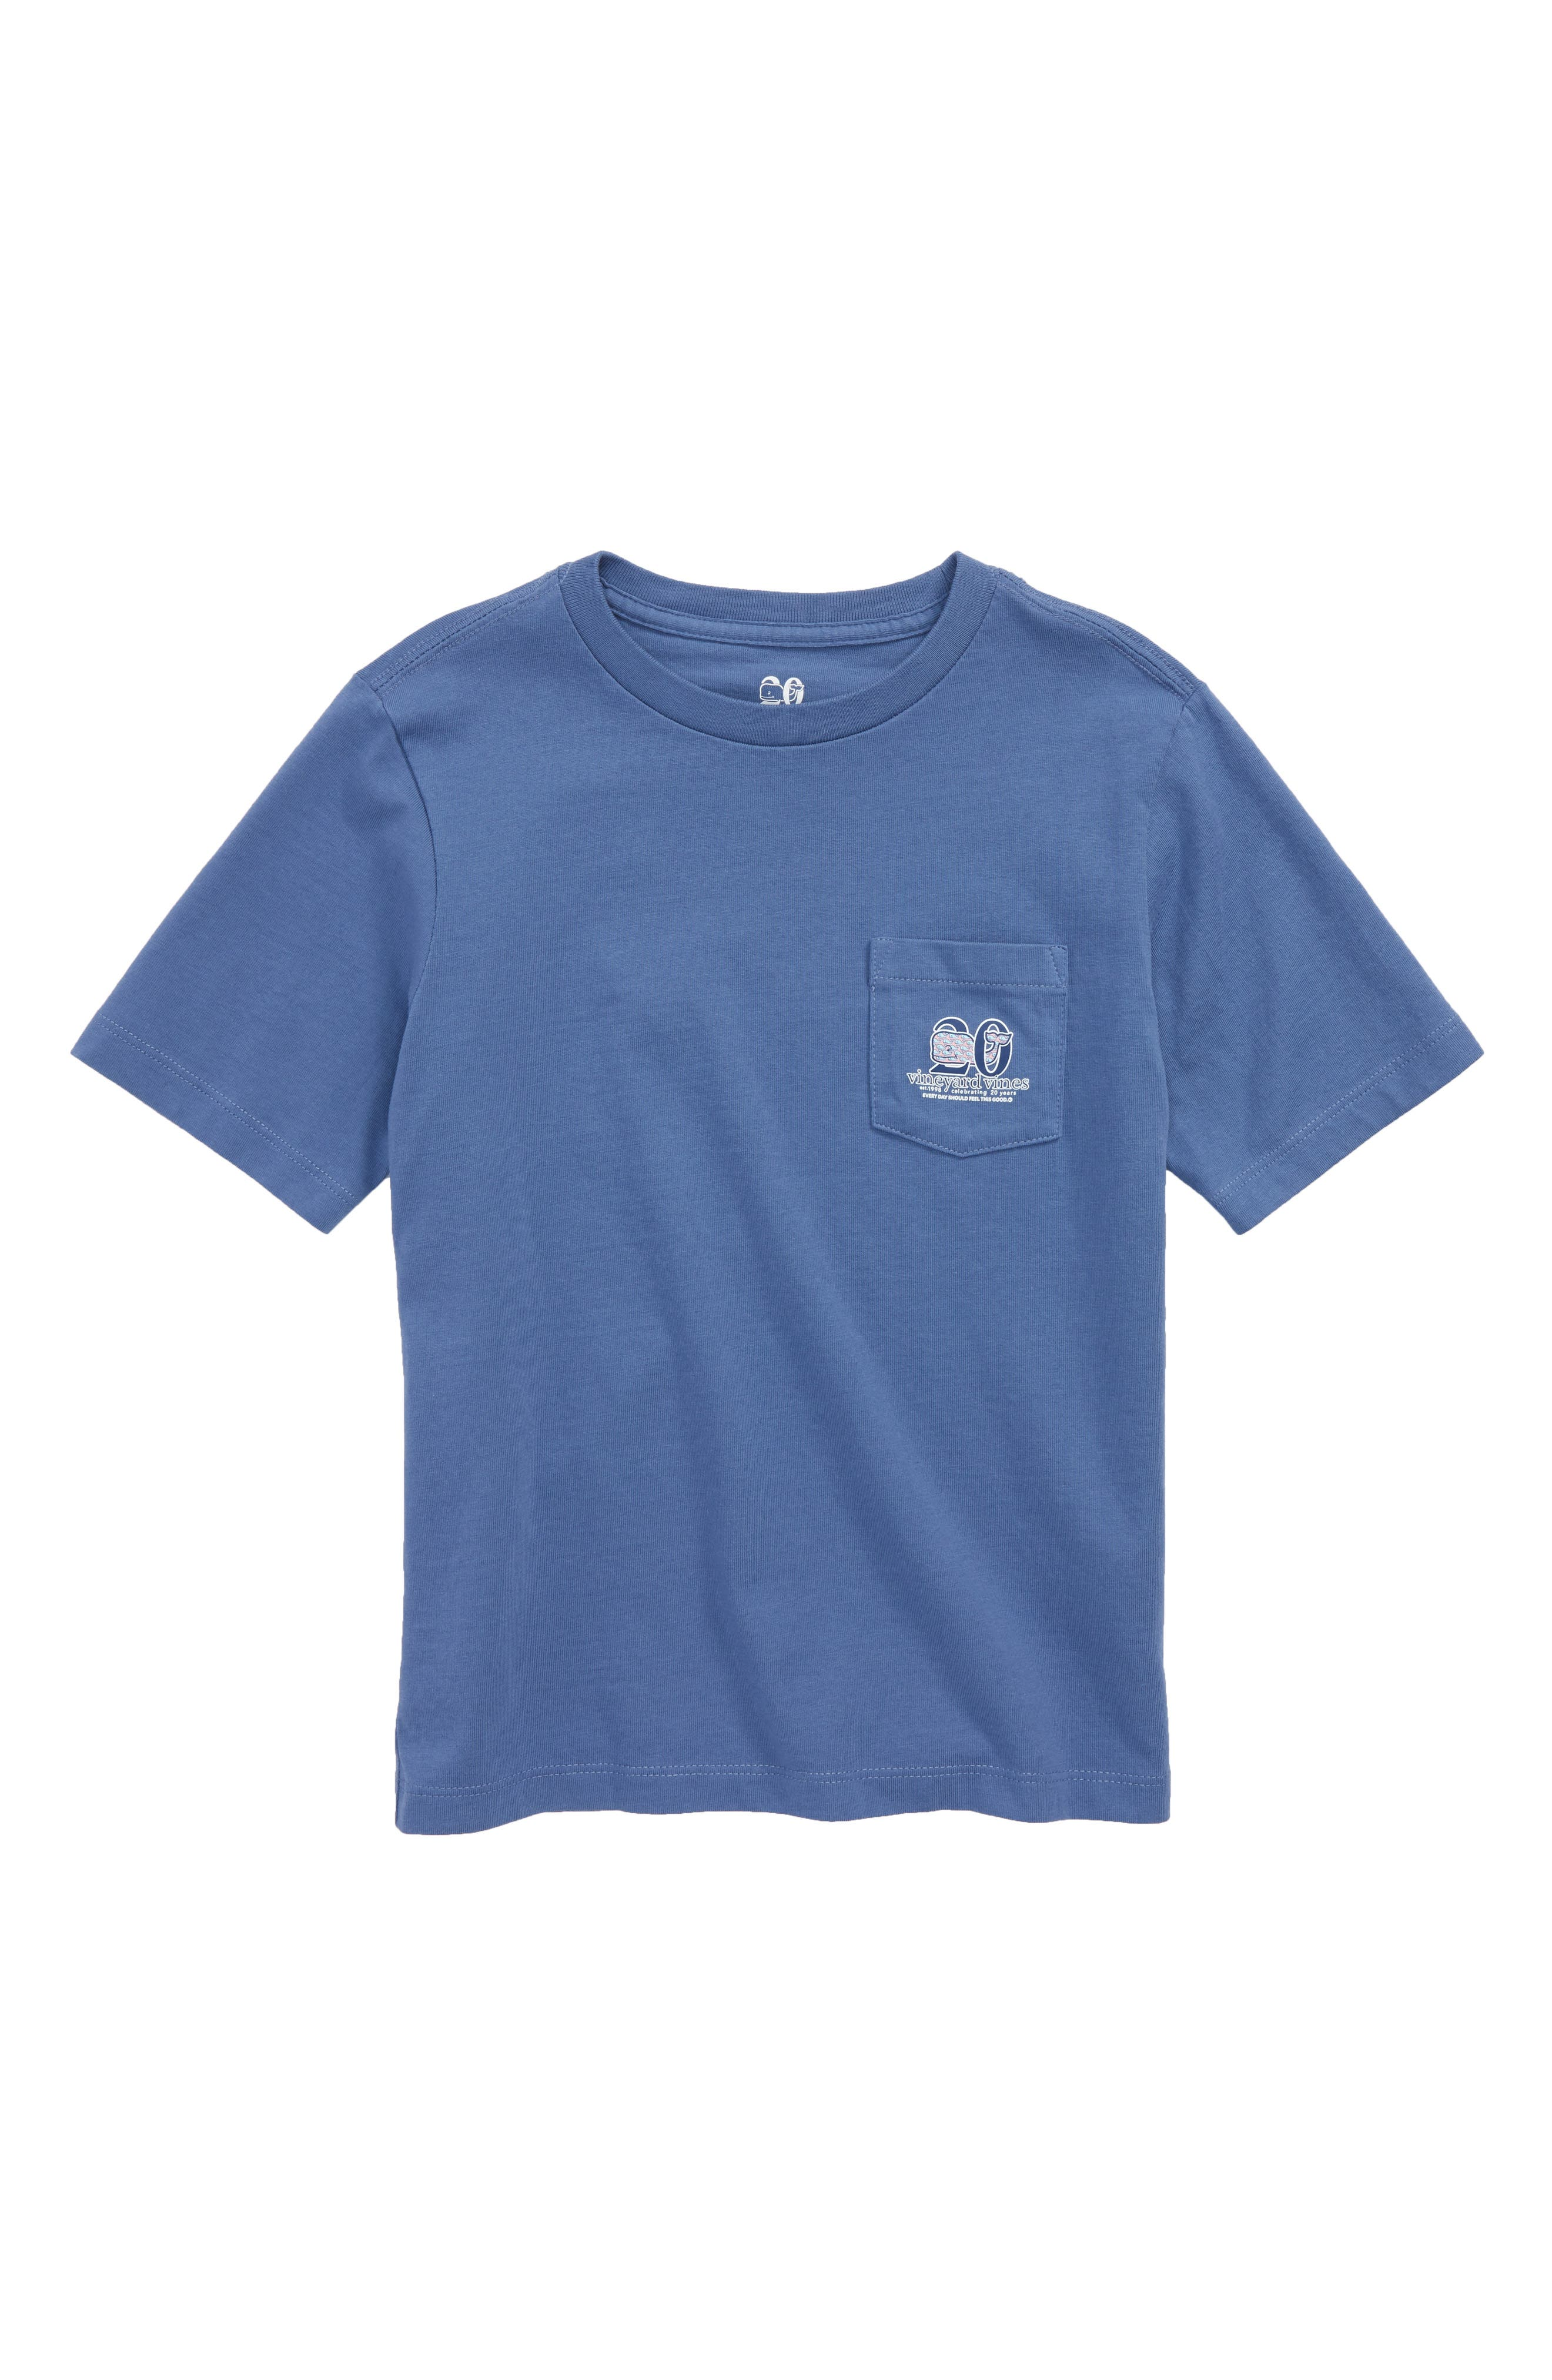 vineyard vines Patchwork Whale Pocket T-Shirt (Toddler Boys & Little Boys)